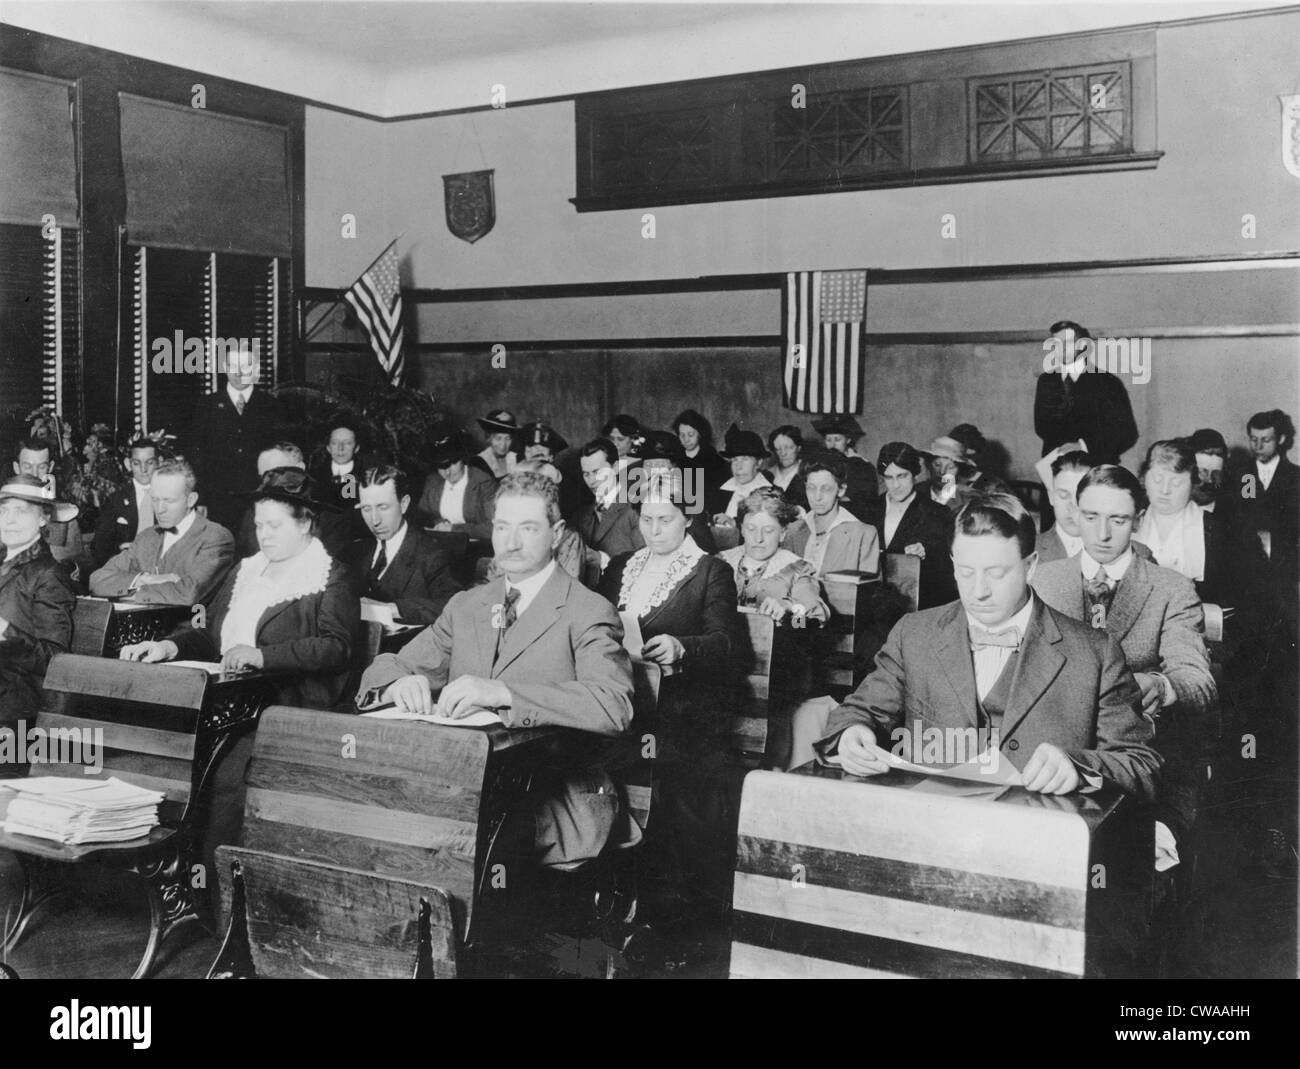 Department of Labor naturalization class teaching immigrants English and US political culture in 1920. - Stock Image